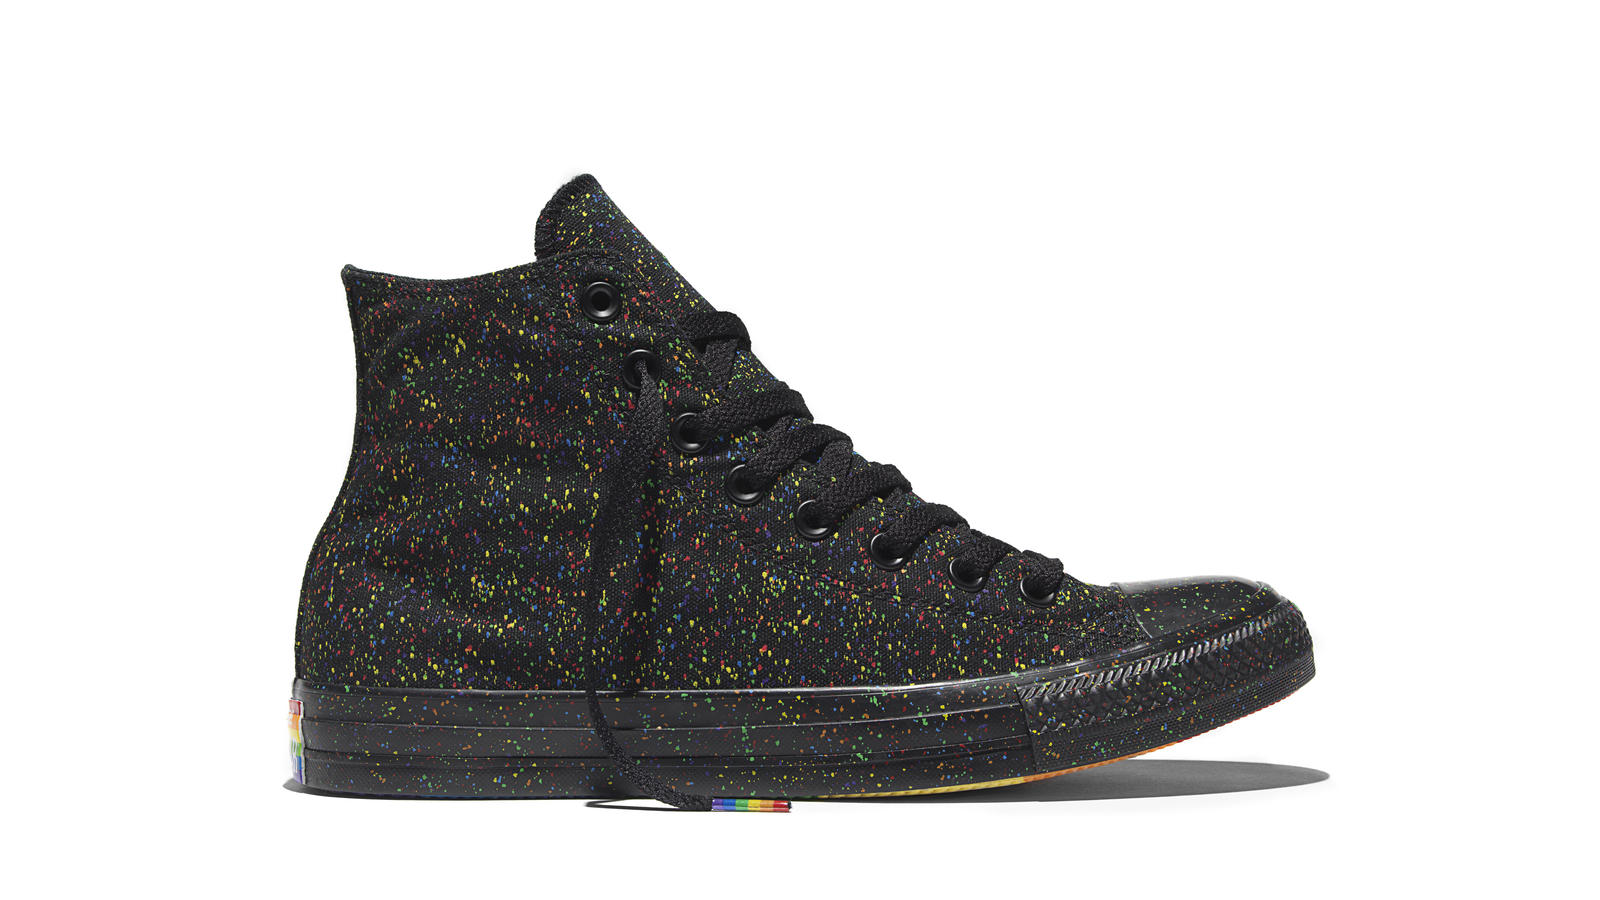 THE 2016 CONVERSE PRIDE COLLECTION